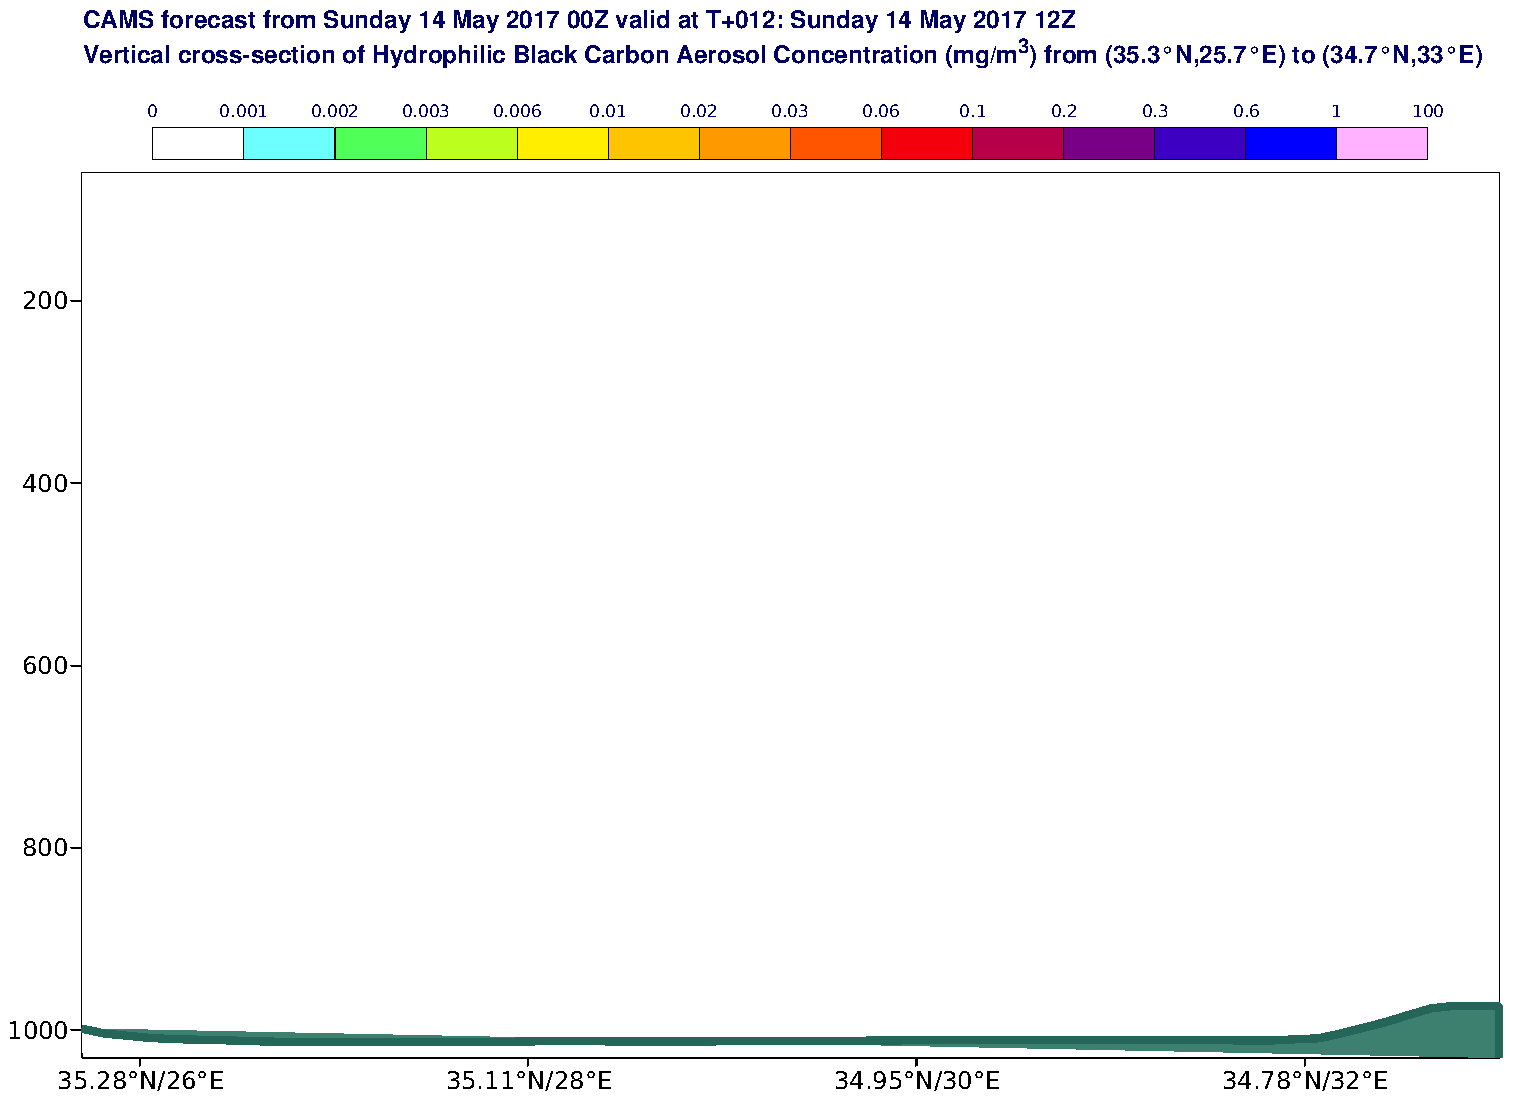 Vertical cross-section of Hydrophilic Black Carbon Aerosol Concentration (mg/m3) valid at T12 - 2017-05-14 12:00